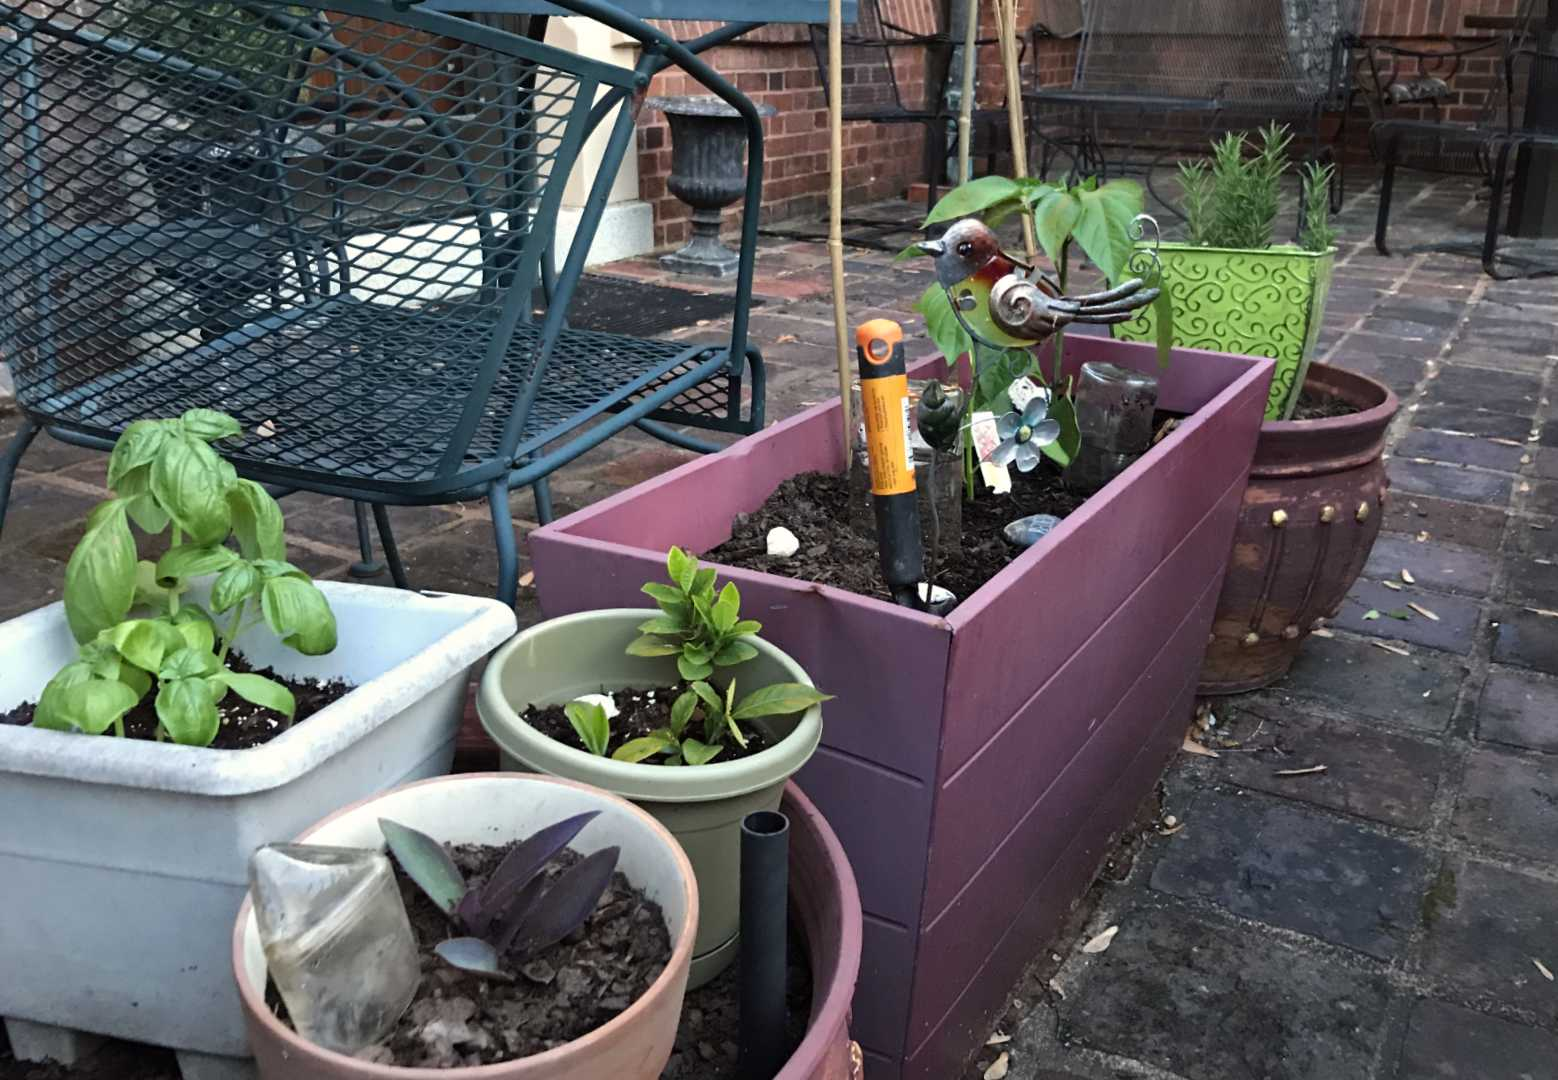 A bit of Jenni's gardening handy work—herbs and plants in pots!